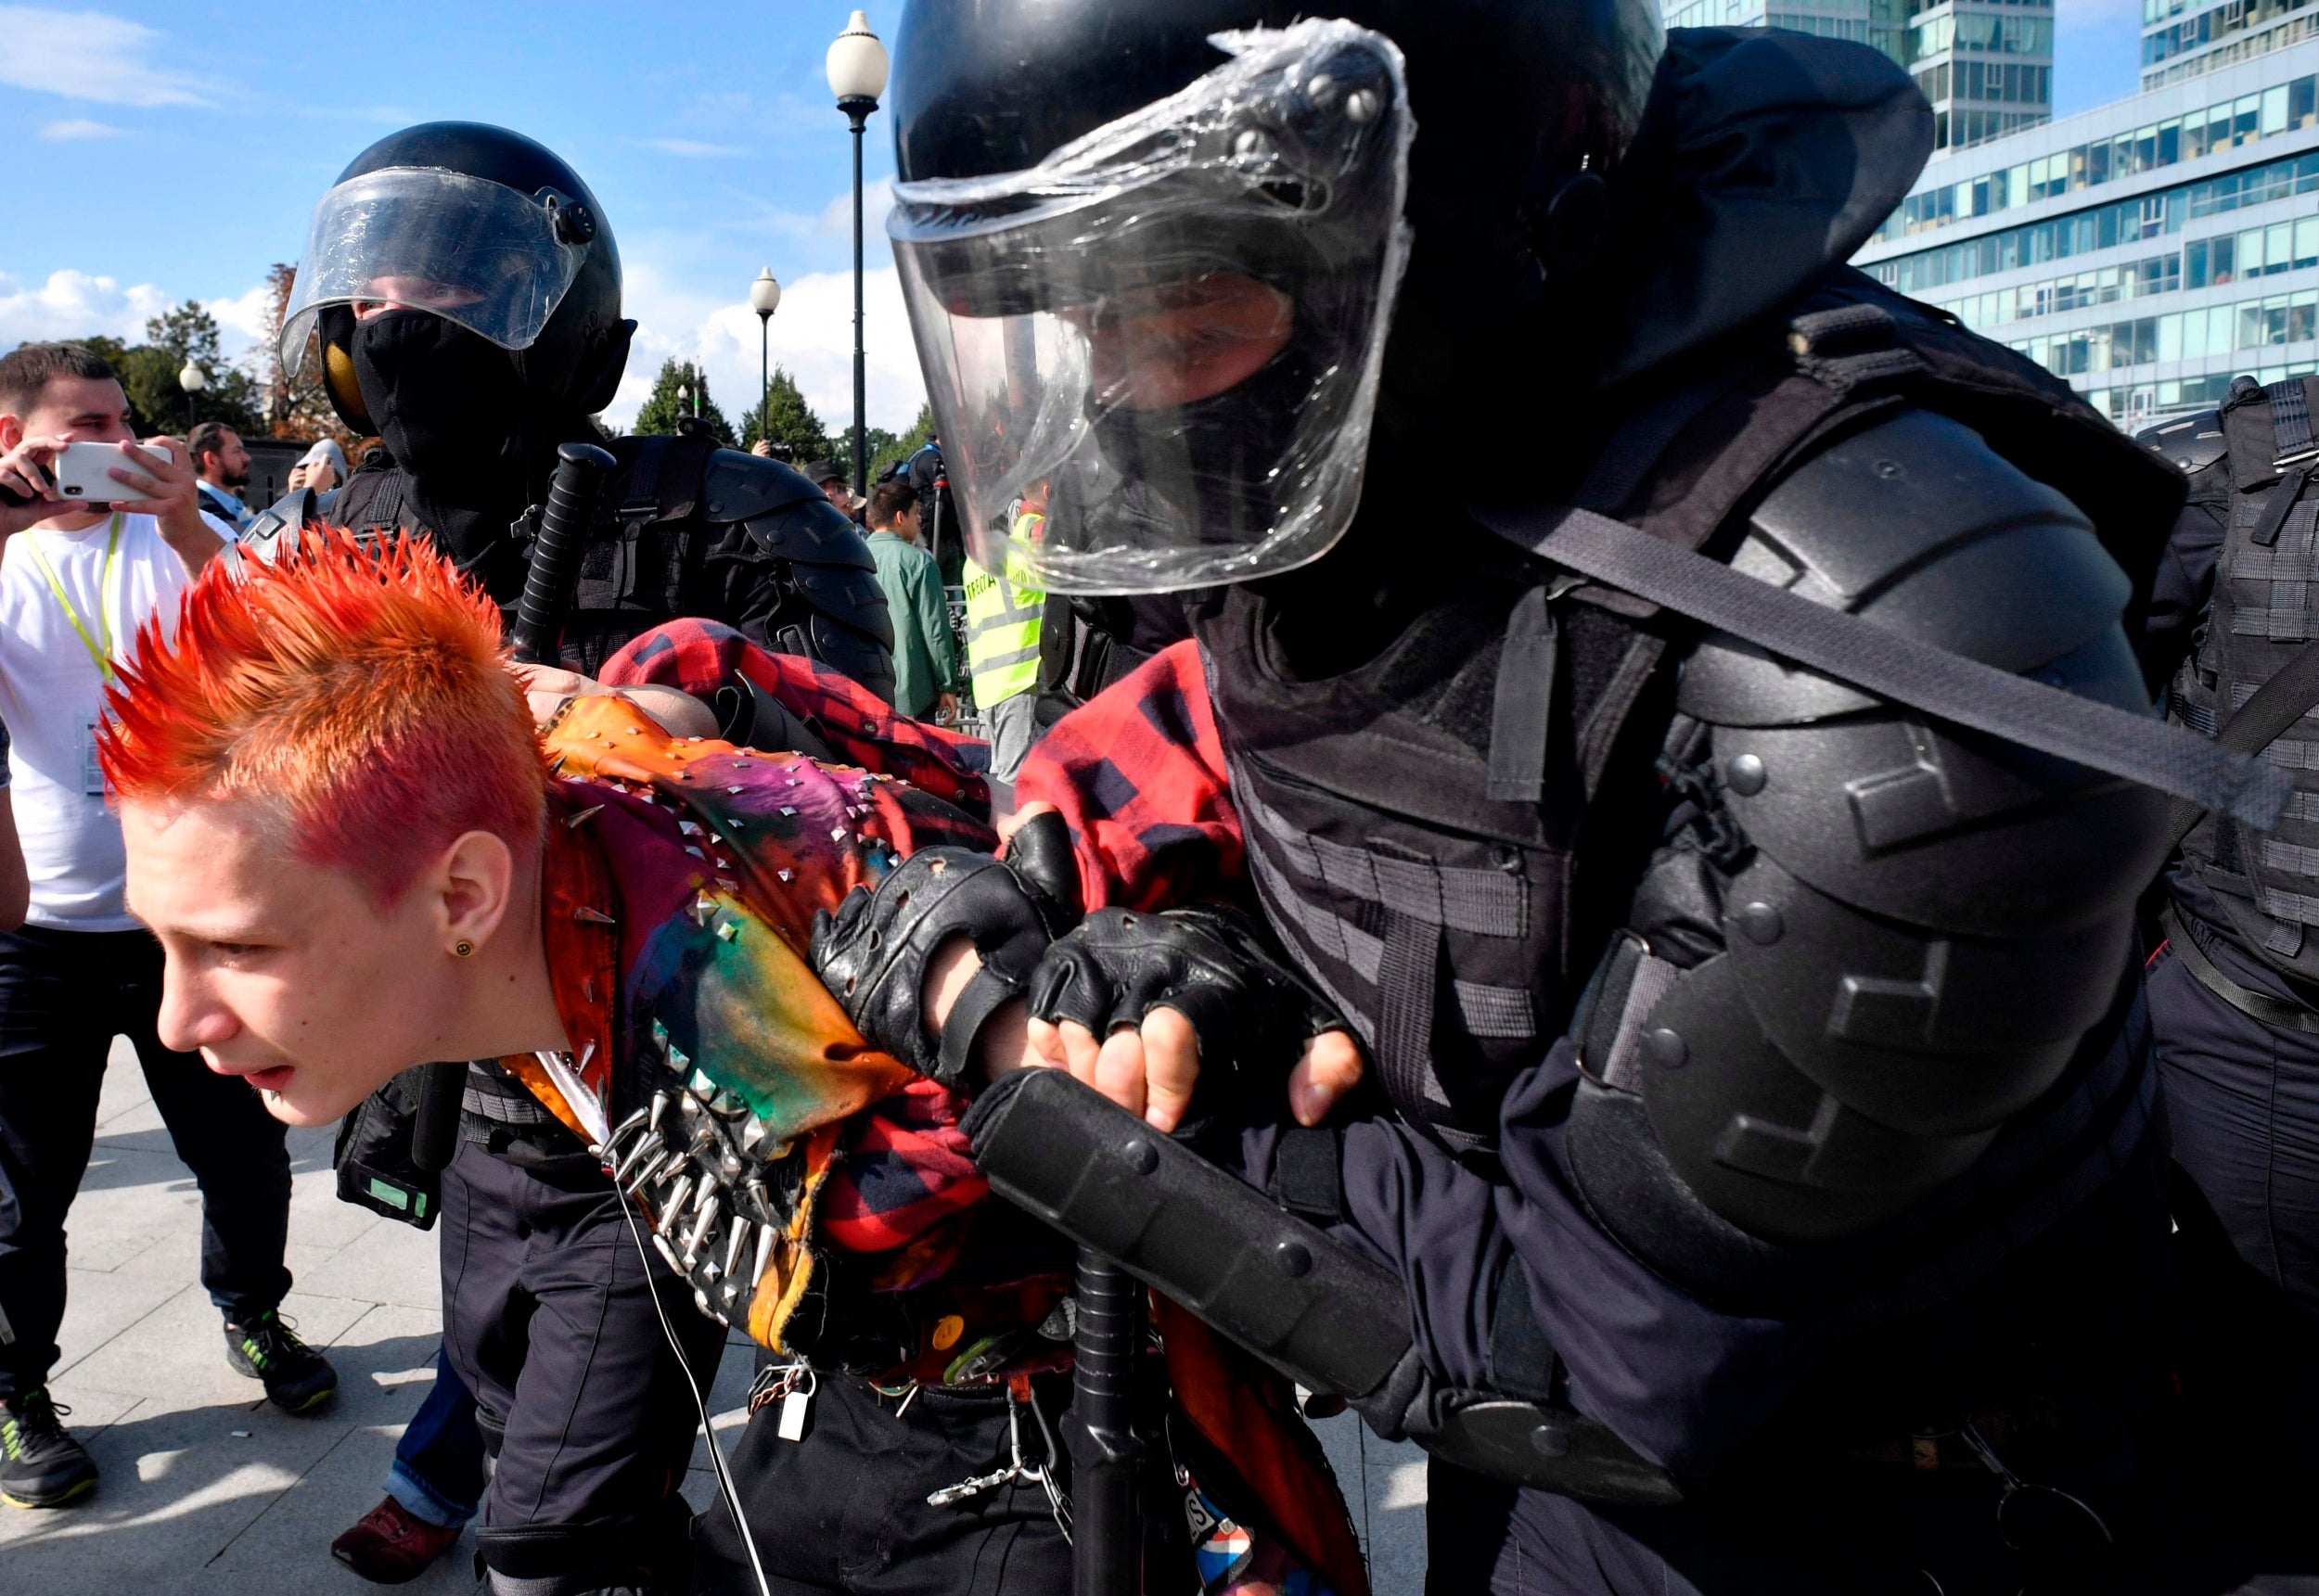 https://static.independent.co.uk/s3fs-public/thumbnails/image/2019/08/03/16/Moscow-protests-15.jpg